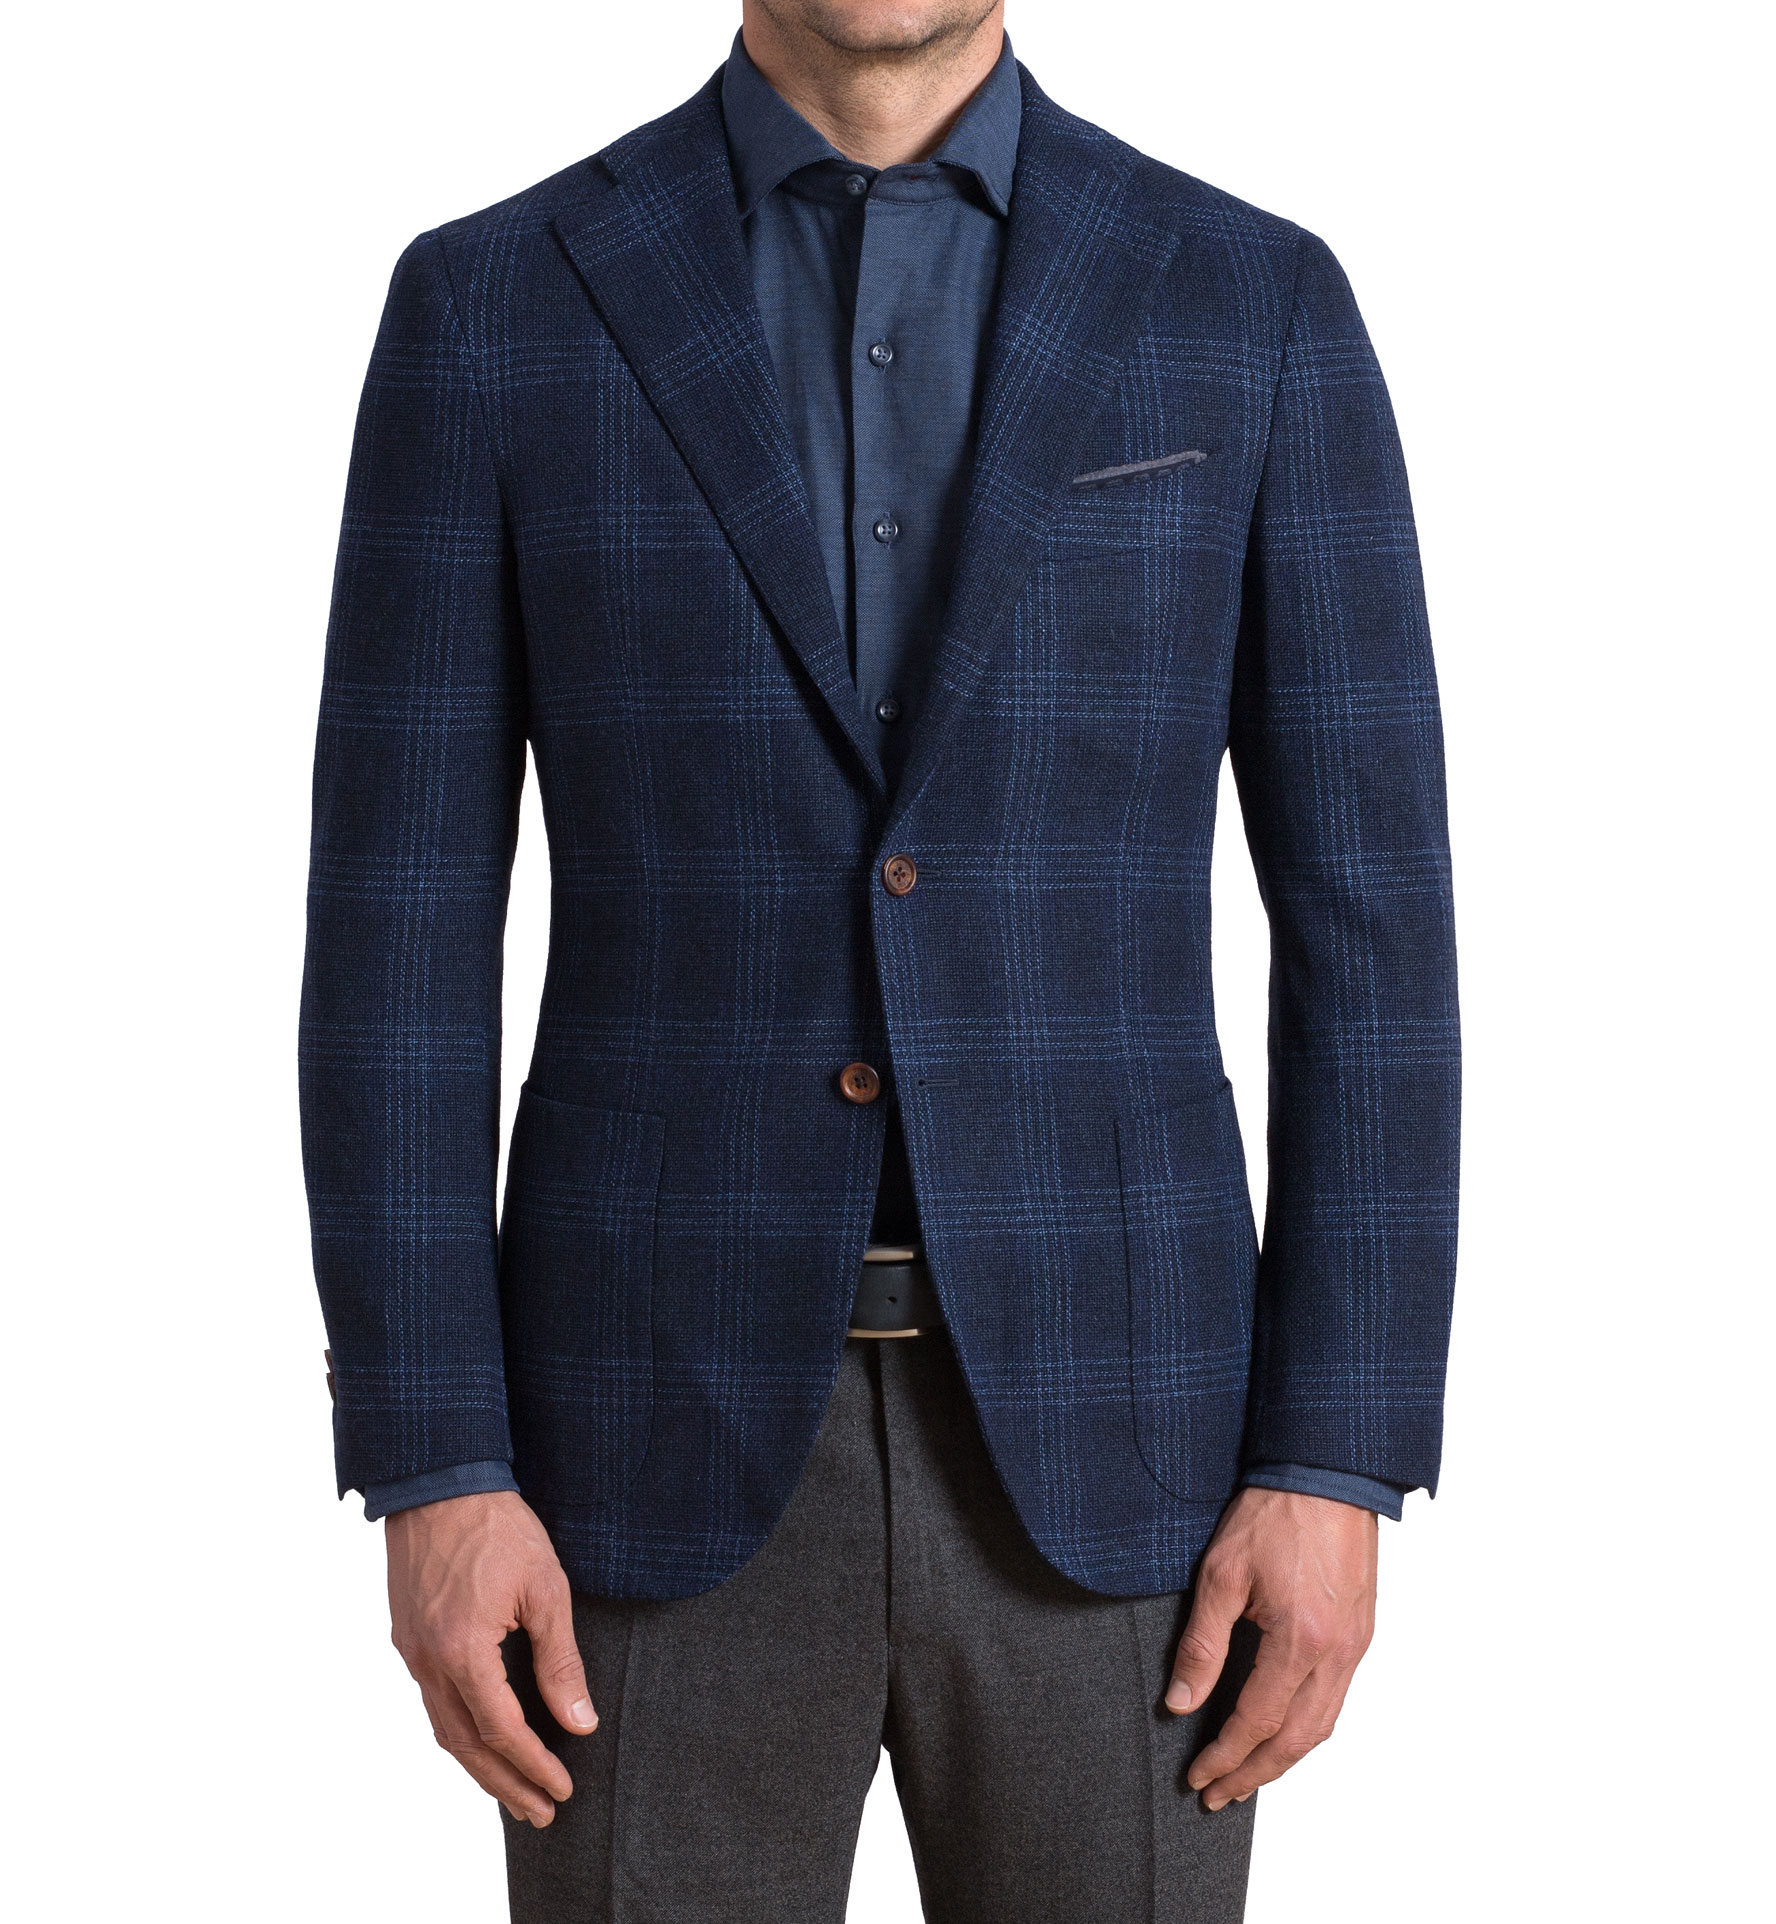 Zoom Image of Hudson Navy and Blue Check Textured Wool Jacket